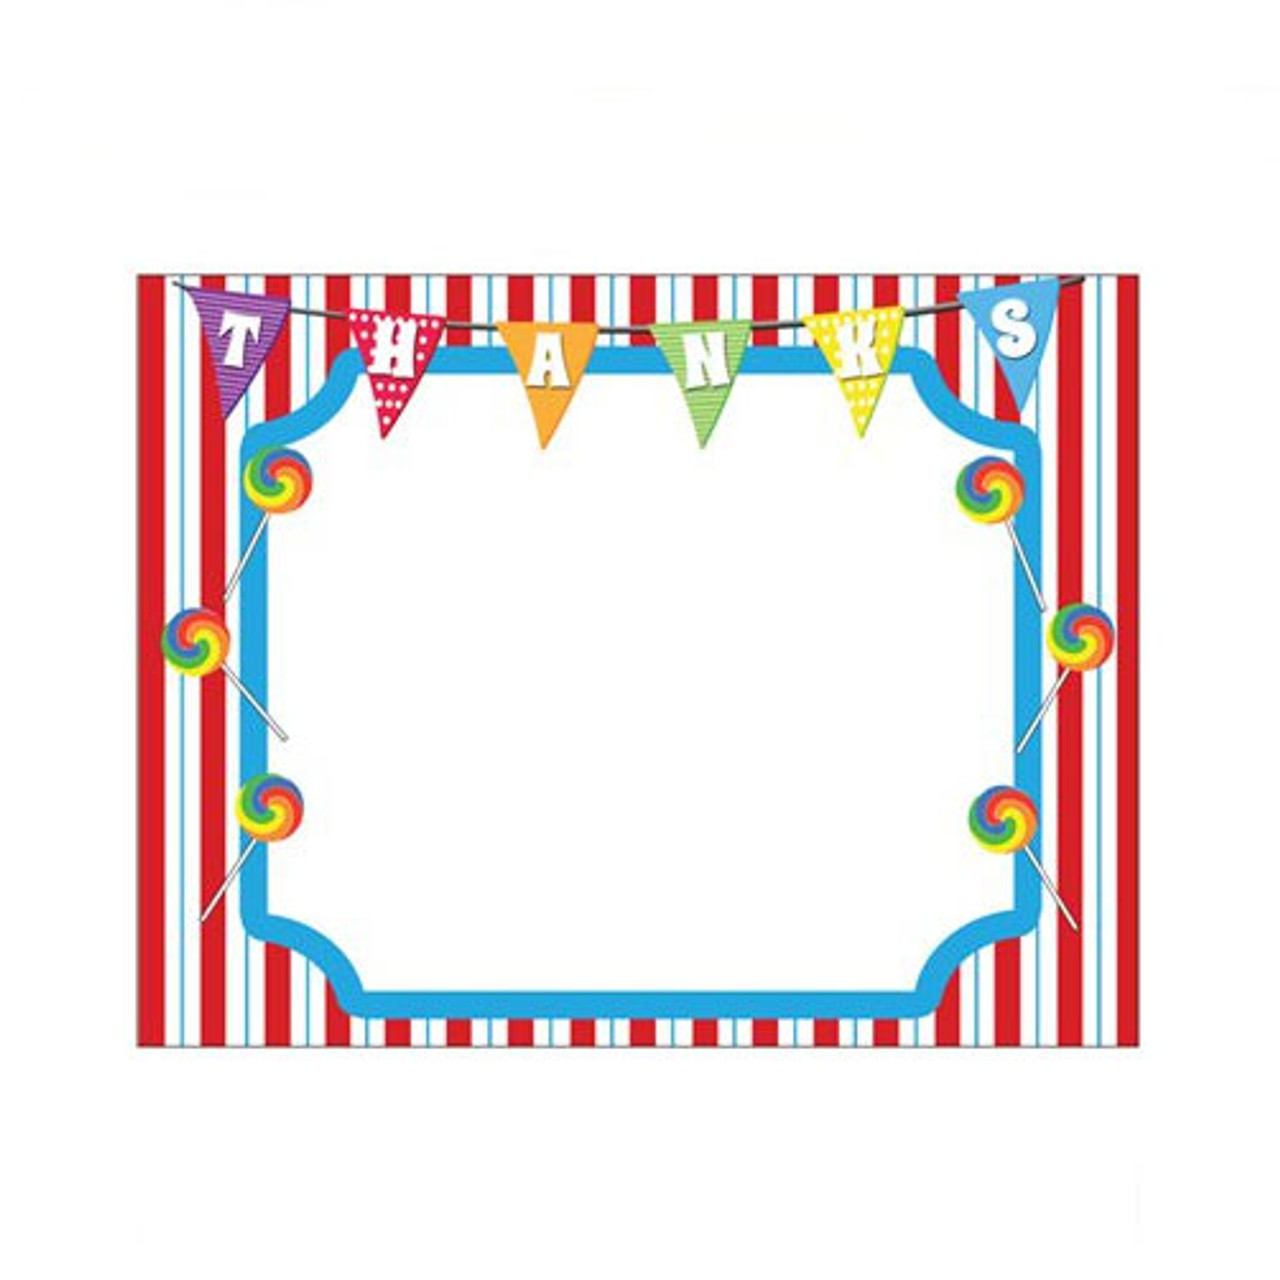 Carnival themed party thank you note the finishing touch sold out carnival party themed thank you notes thecheapjerseys Image collections